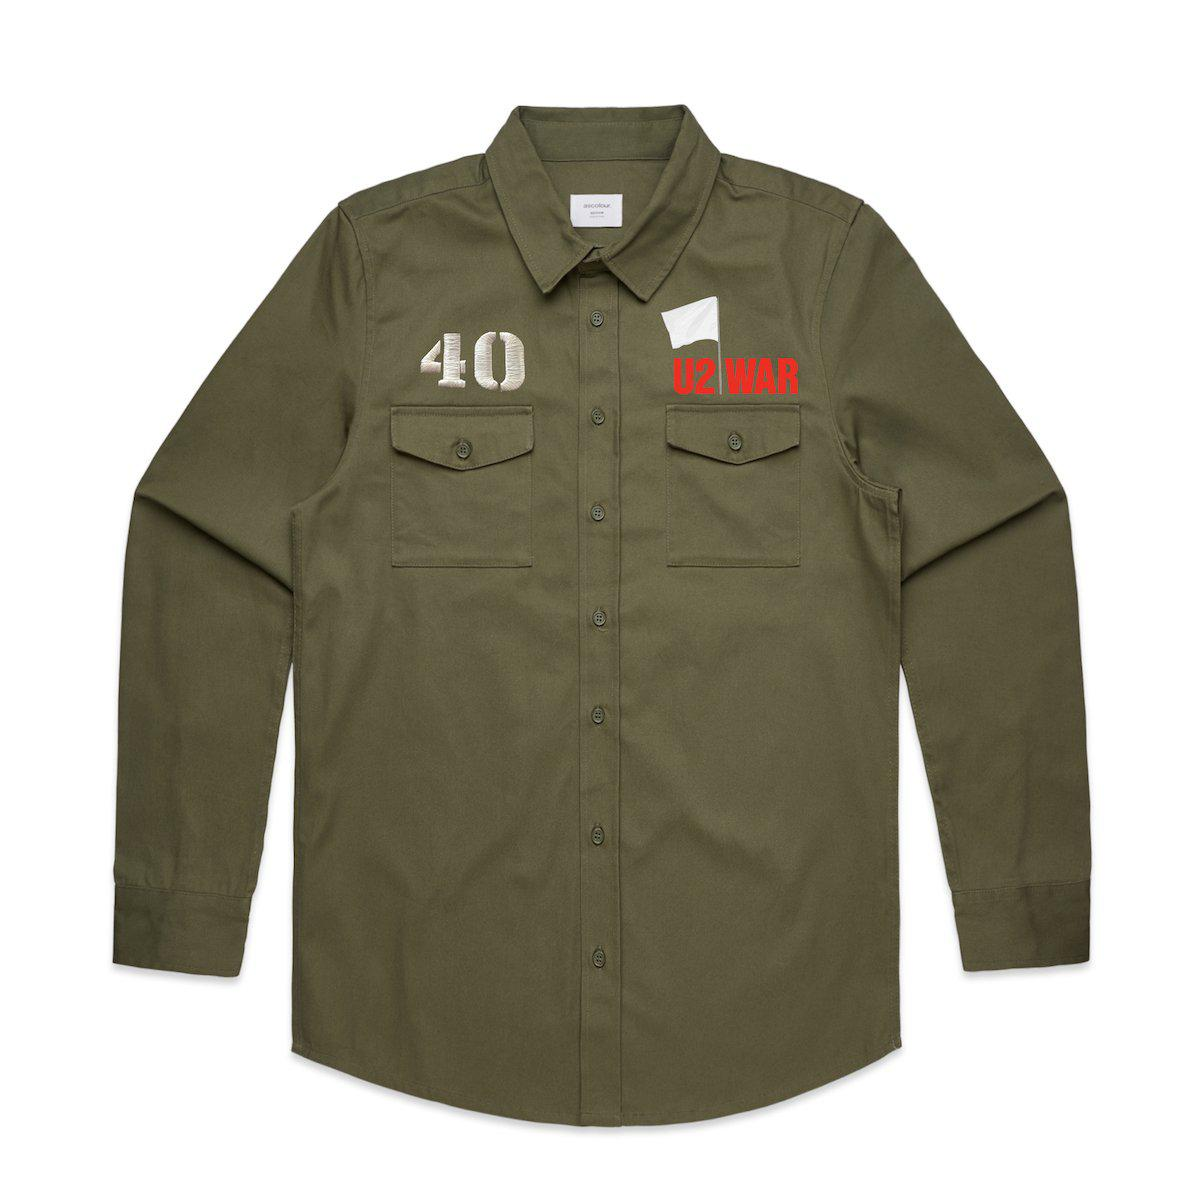 WAR Military Style Shirt-U2